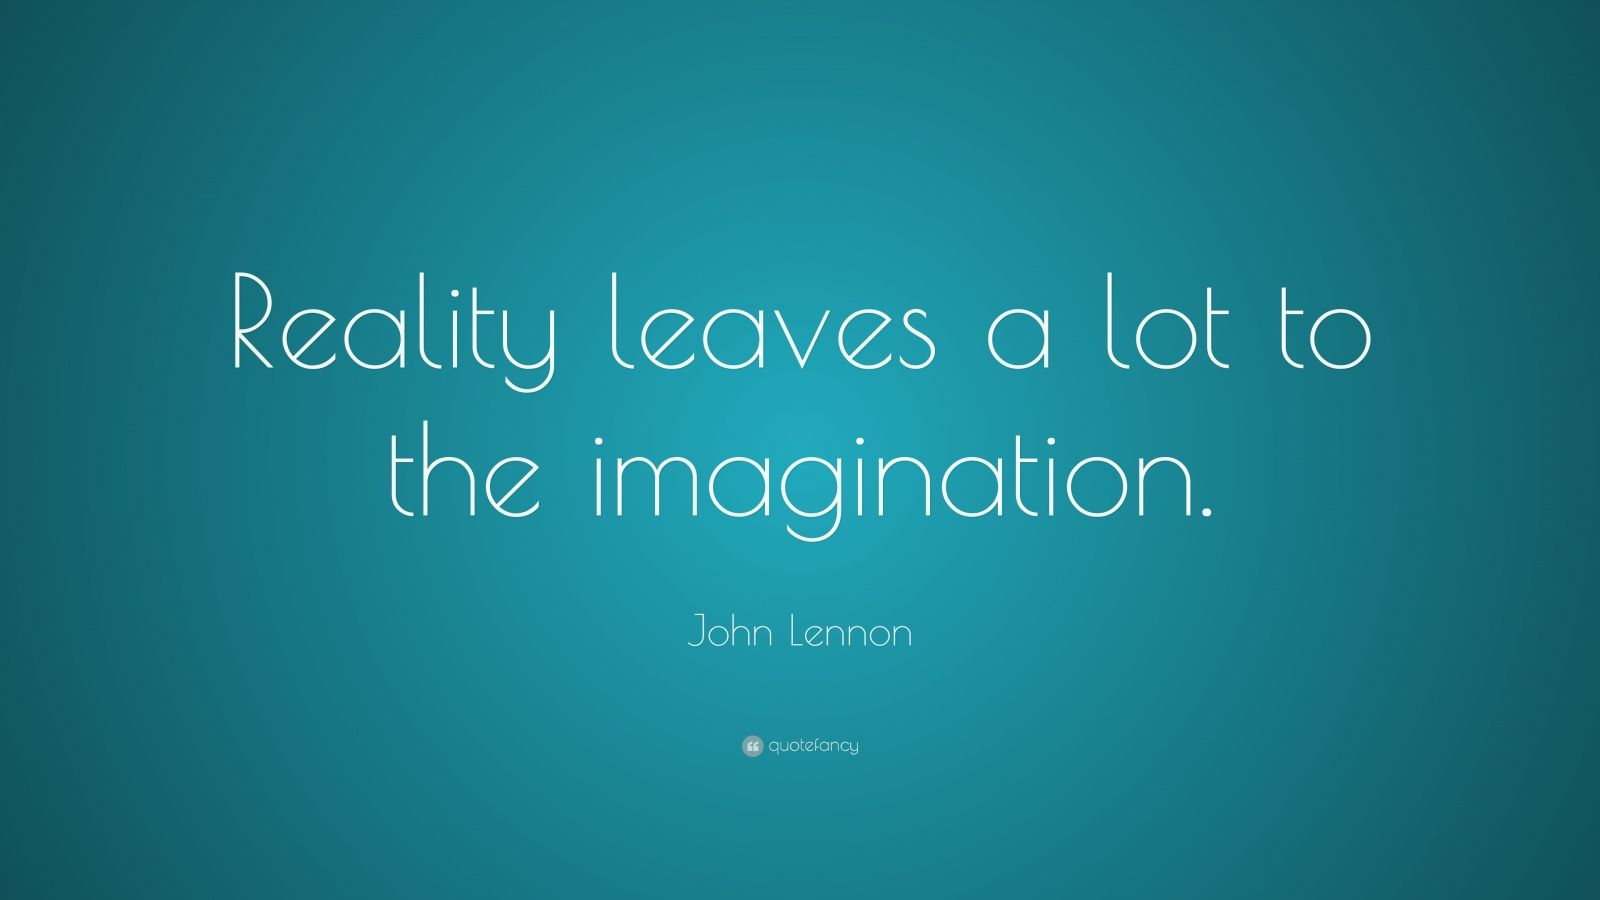 Aristotle Quotes Wallpaper John Lennon Quote Reality Leaves A Lot To The